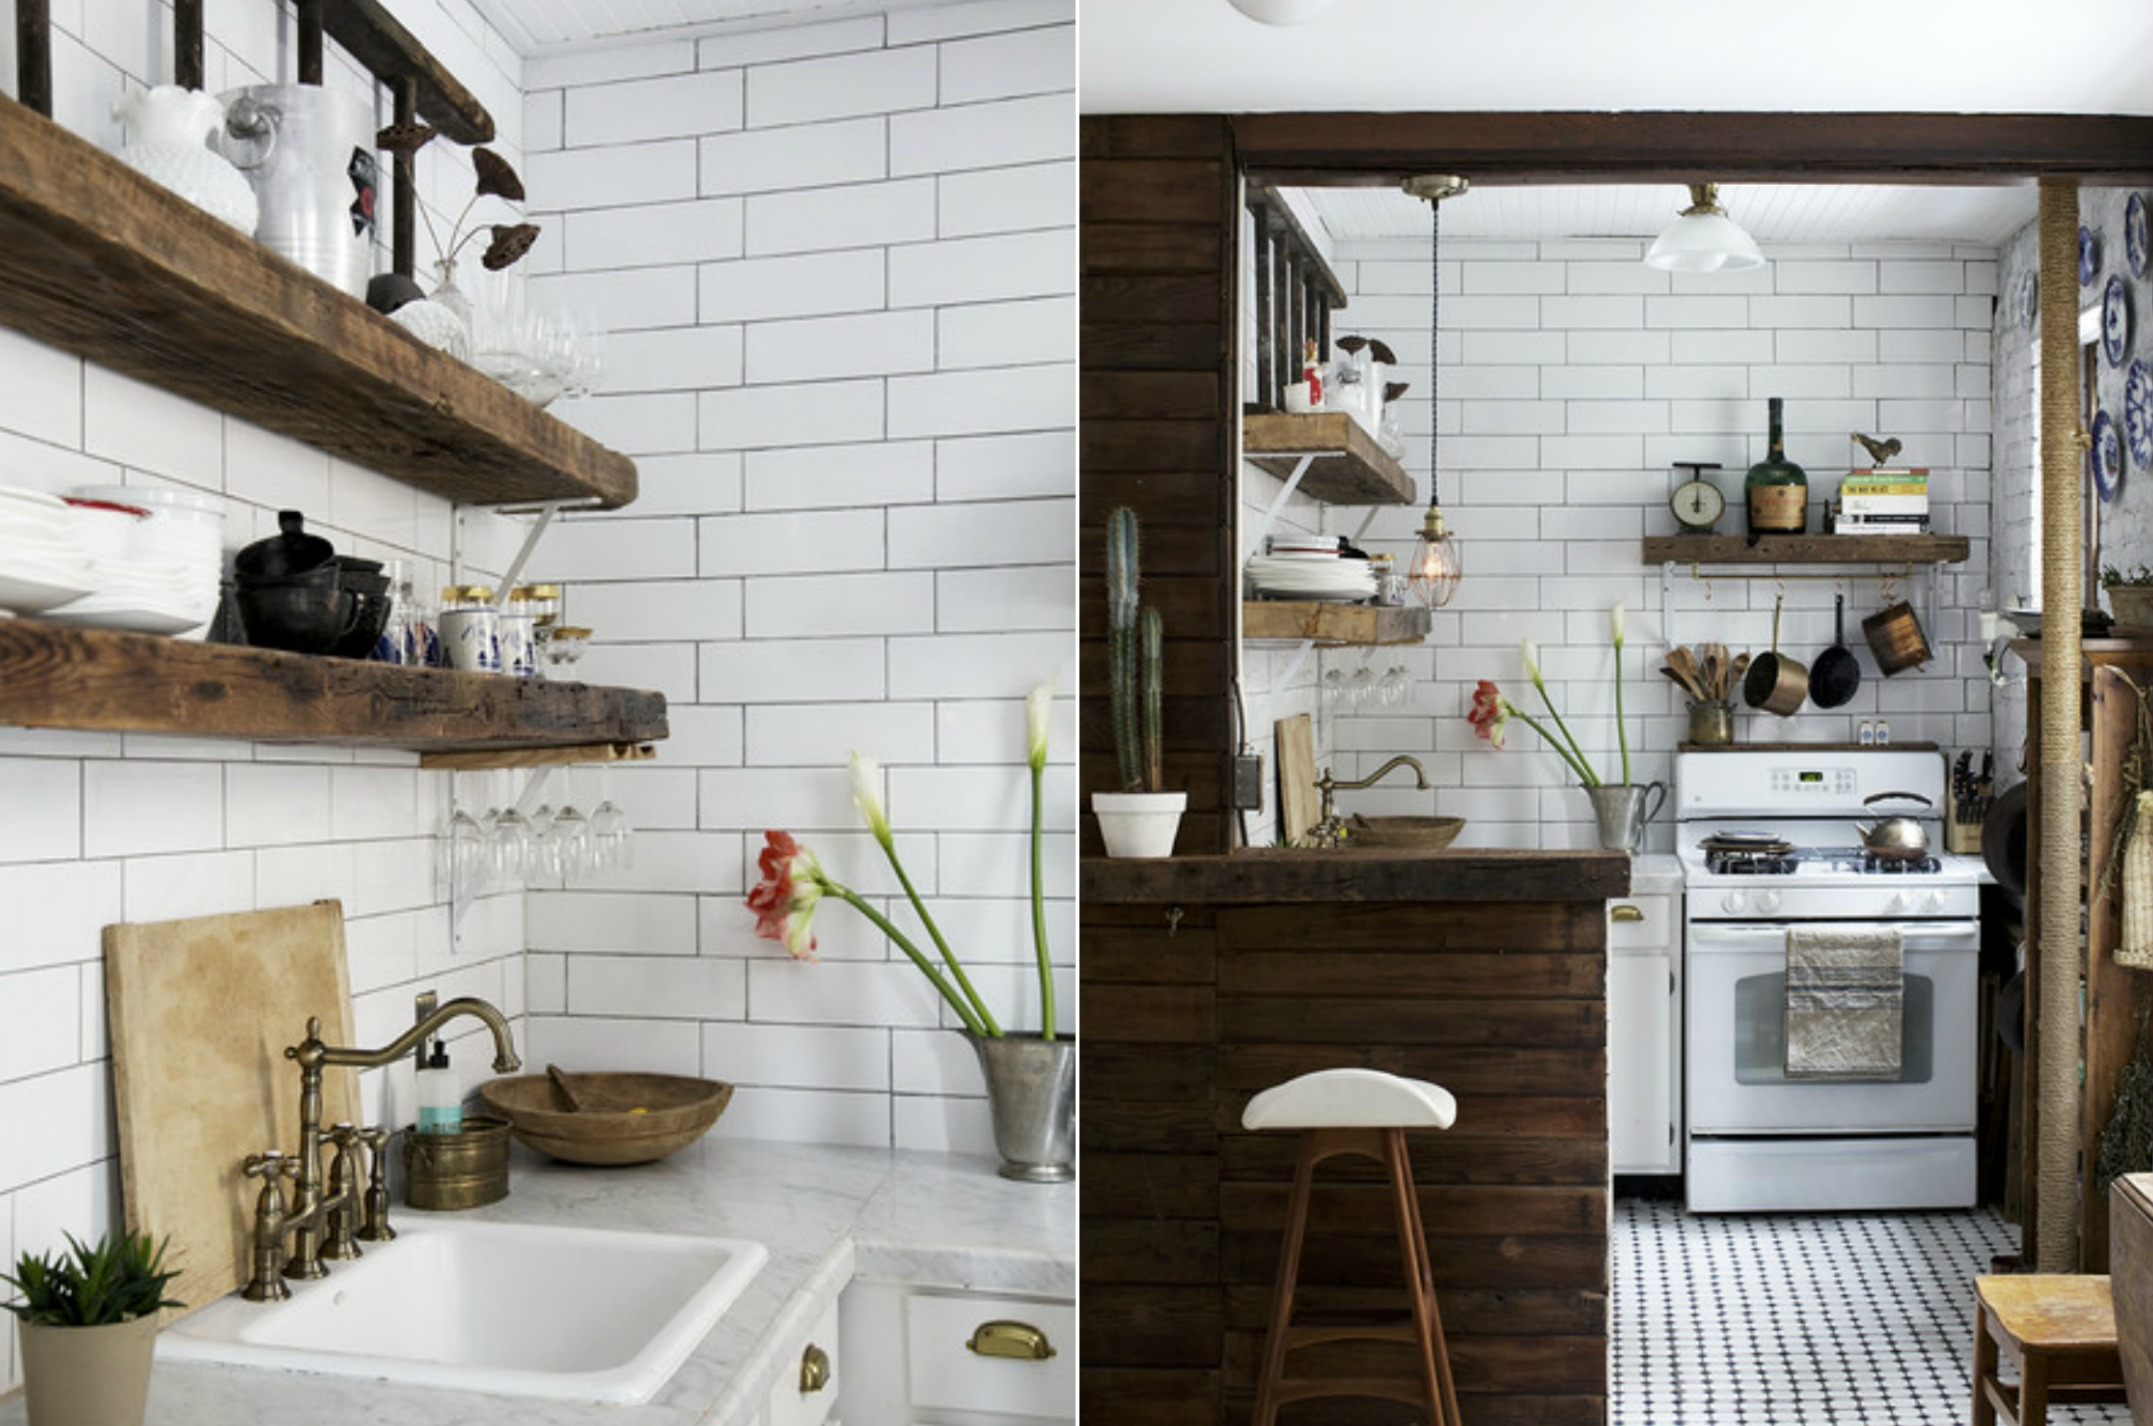 This Kitchen Is Just A Dream For Me The Patterned Tile Floor